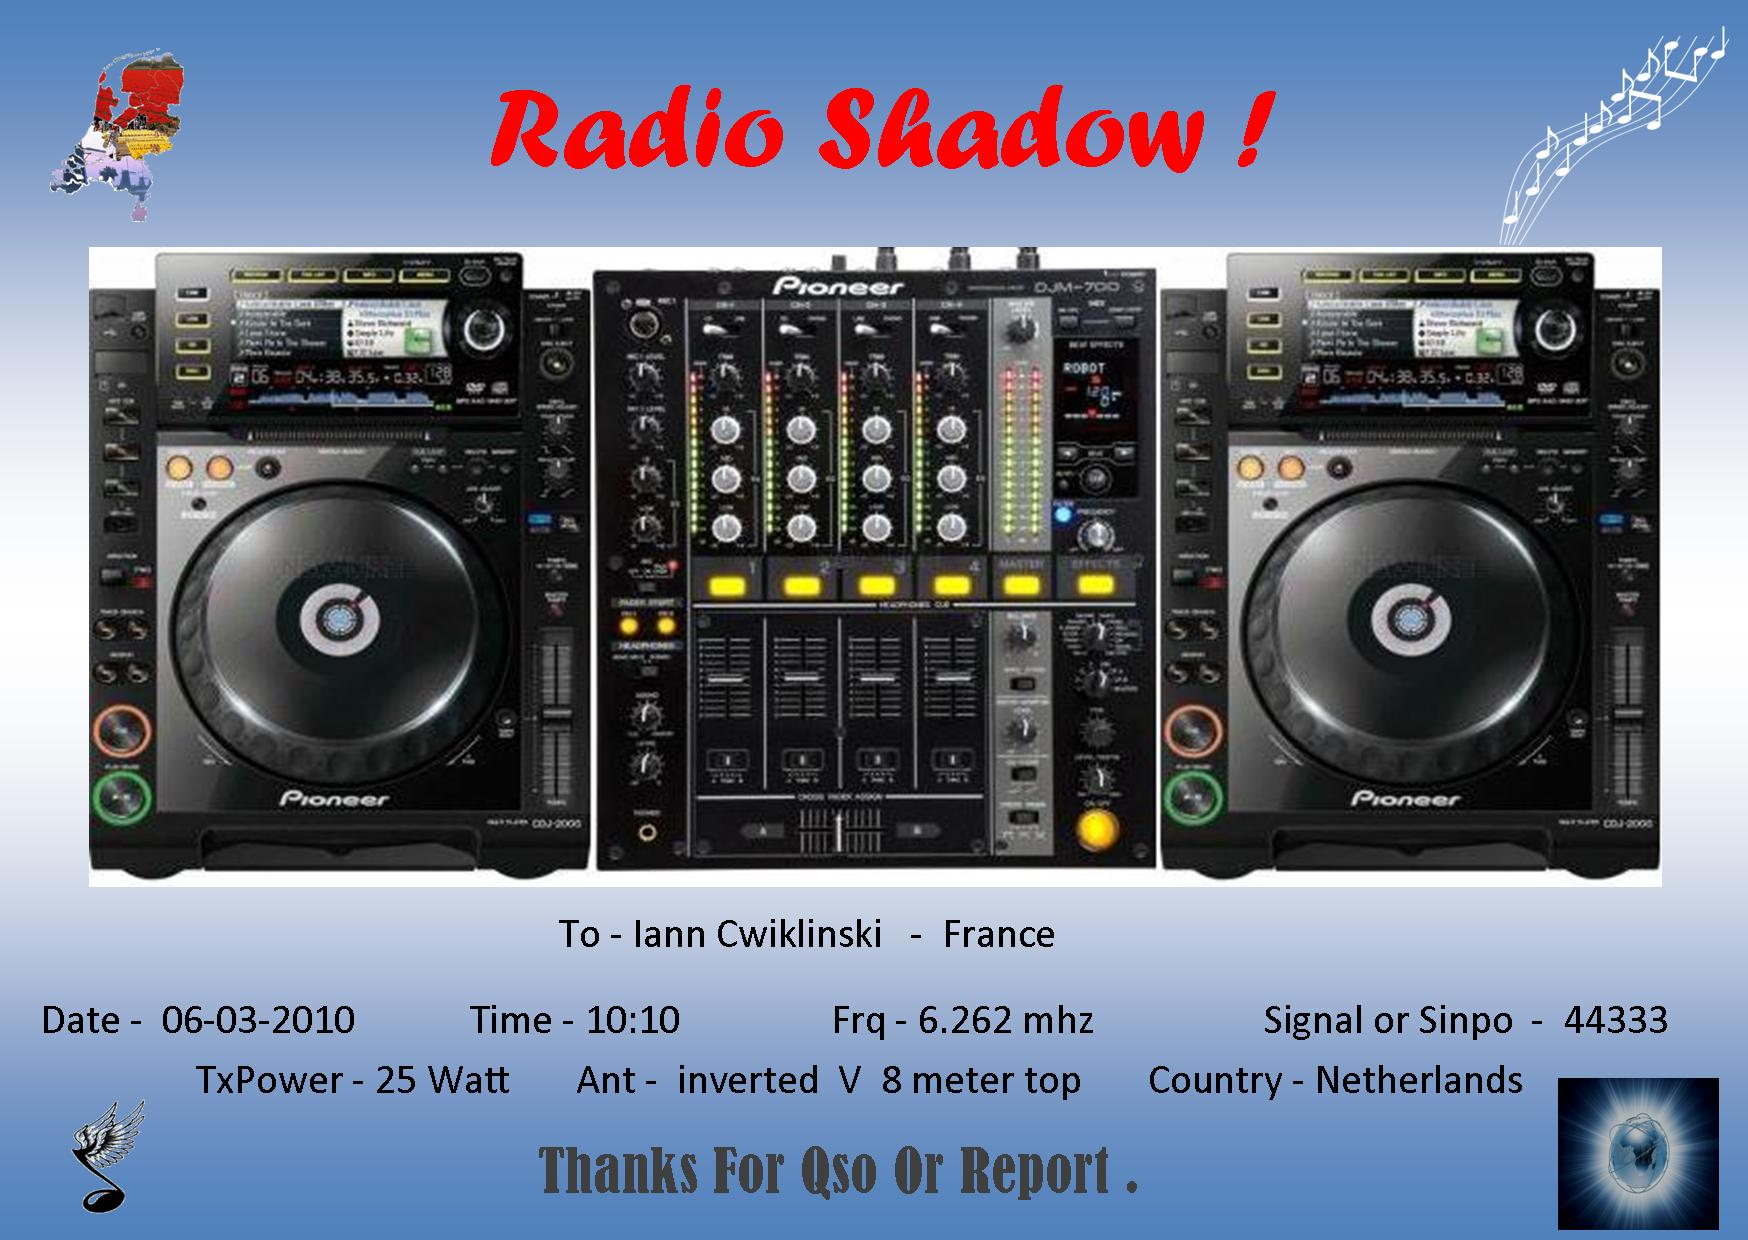 Pirate Radio QSL card - Radio Shadow